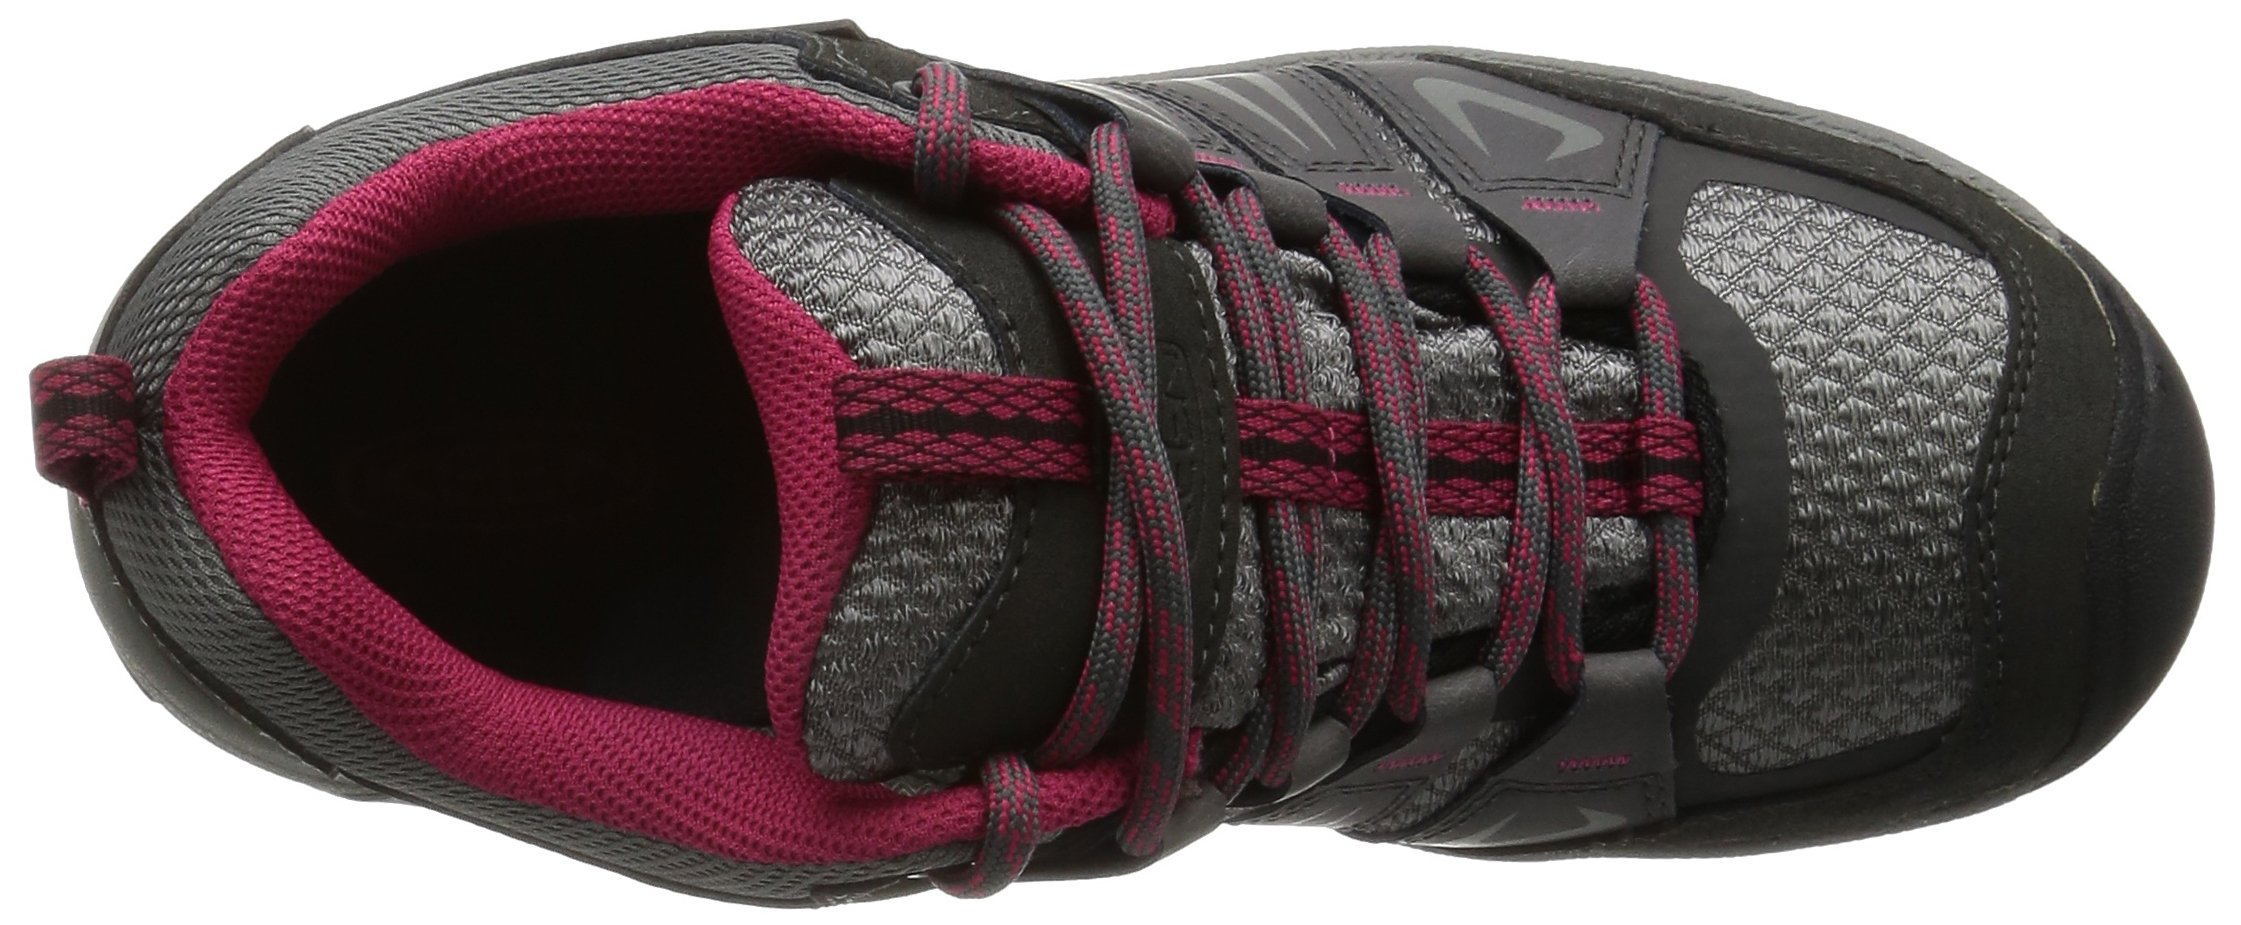 KEEN Women's Oakridge Waterproof Shoe, Magnet/Rose, 9 M US by KEEN (Image #8)